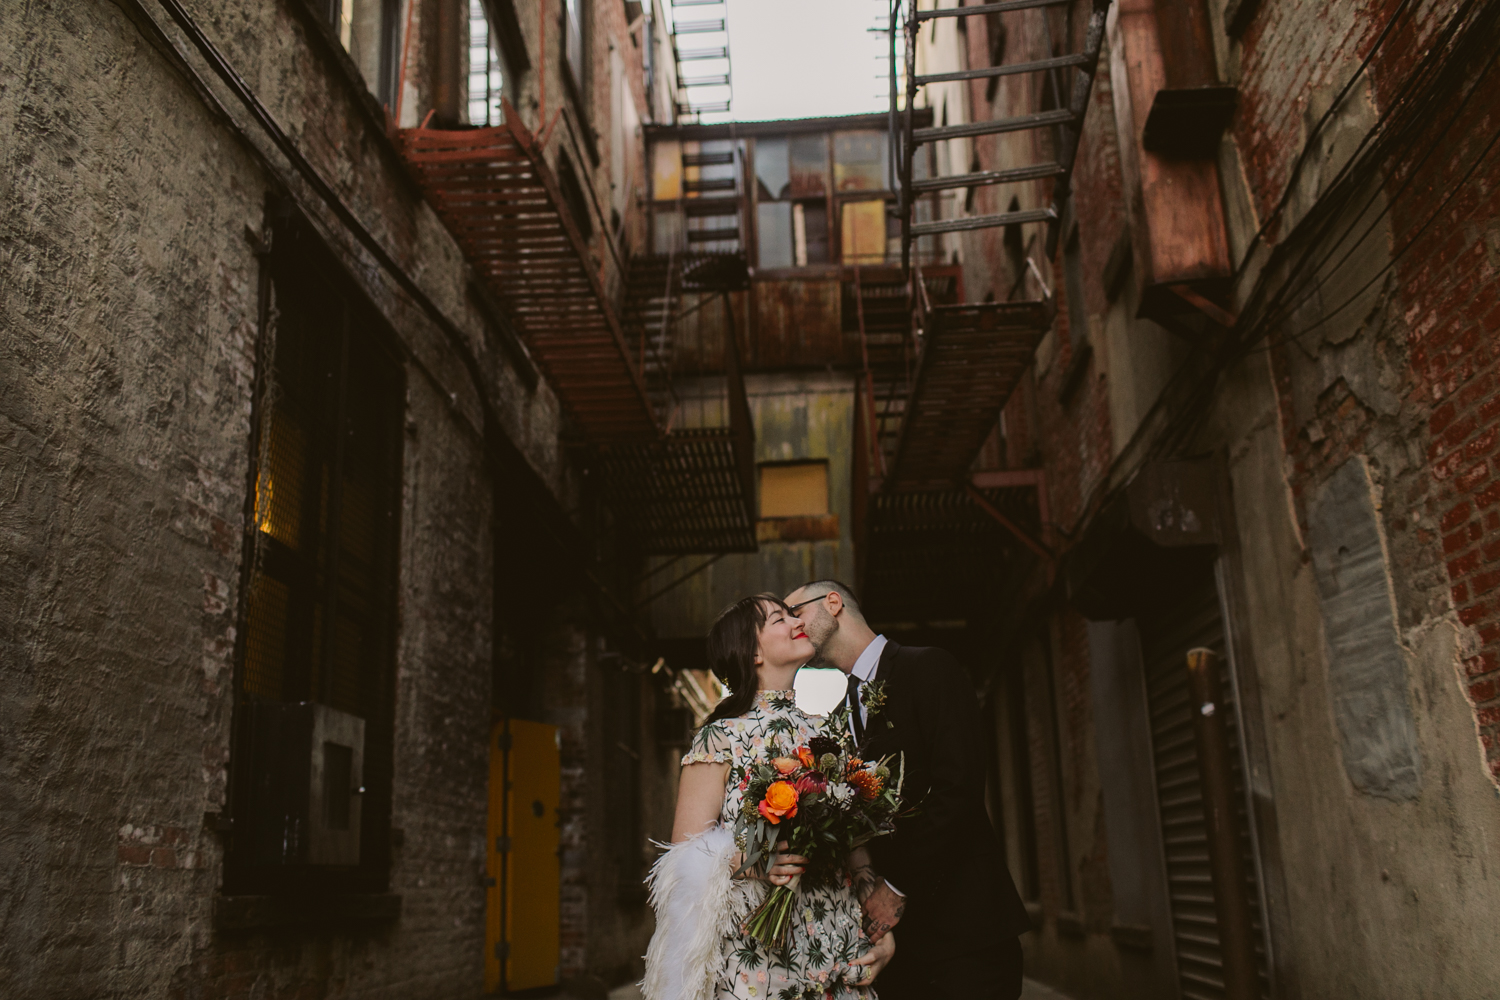 Gowanus-Brooklyn-wedding-uniquelapin-31.jpg